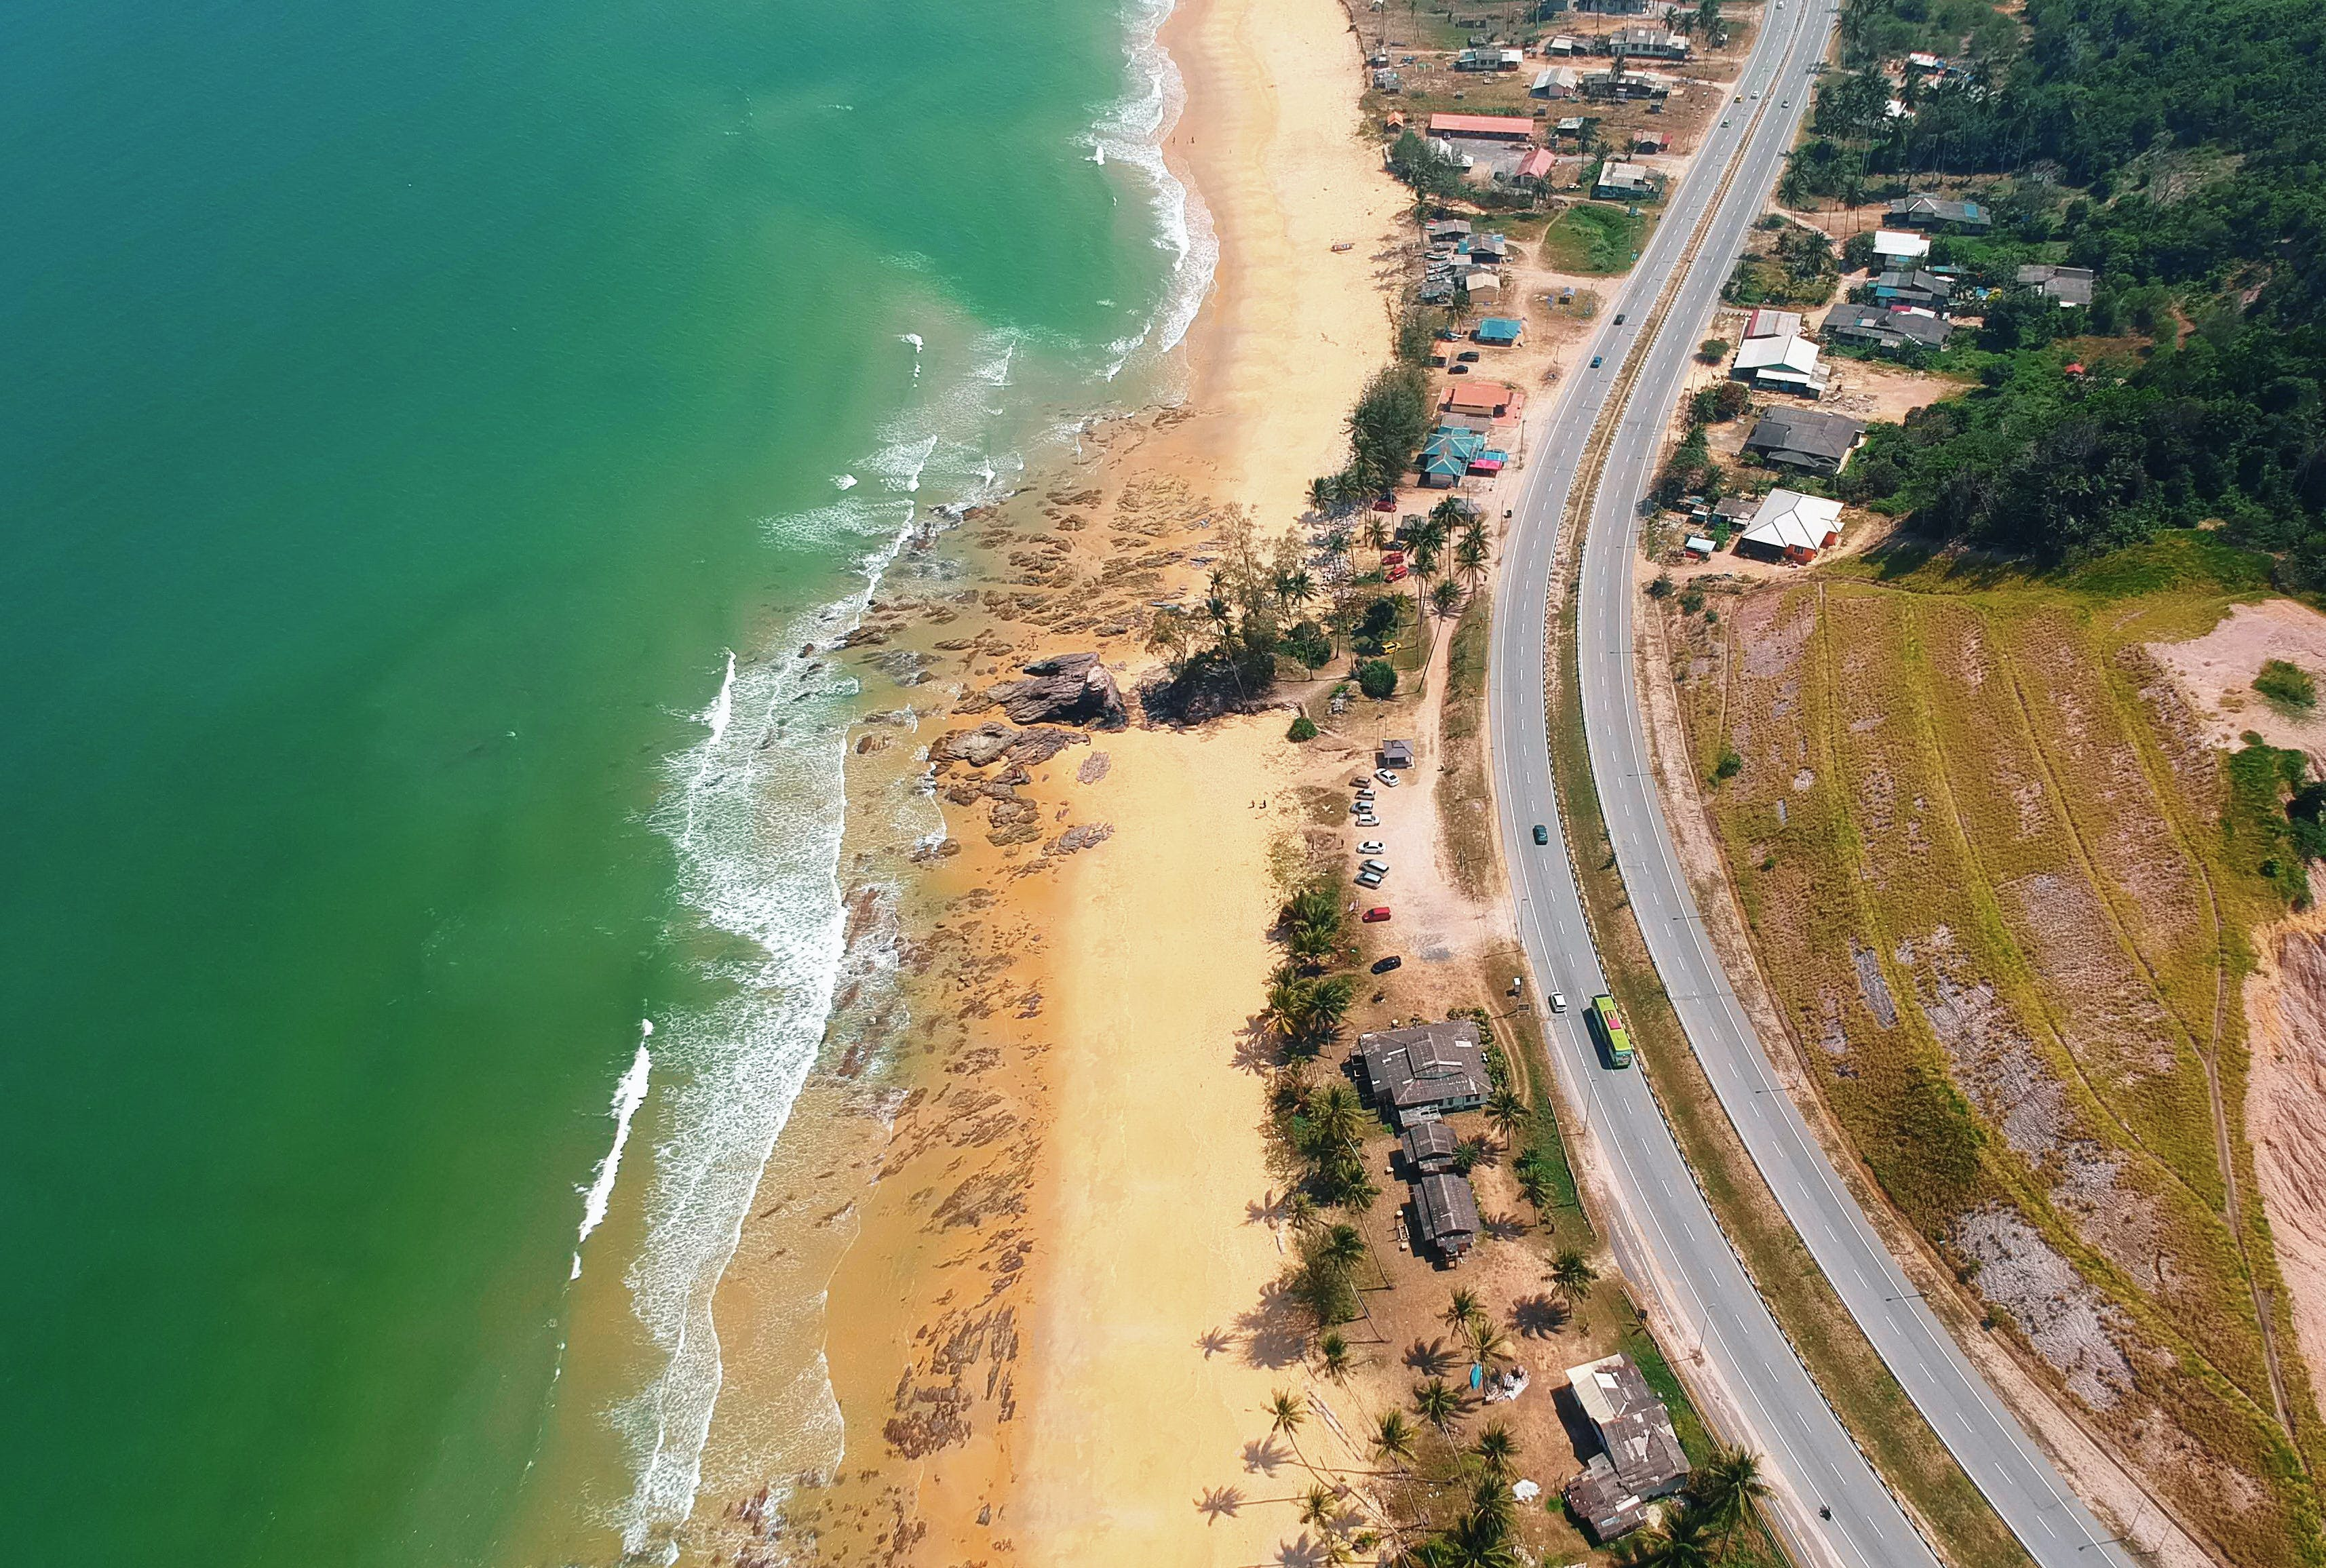 Aerial Photography of Brown Sand Beach Near Road